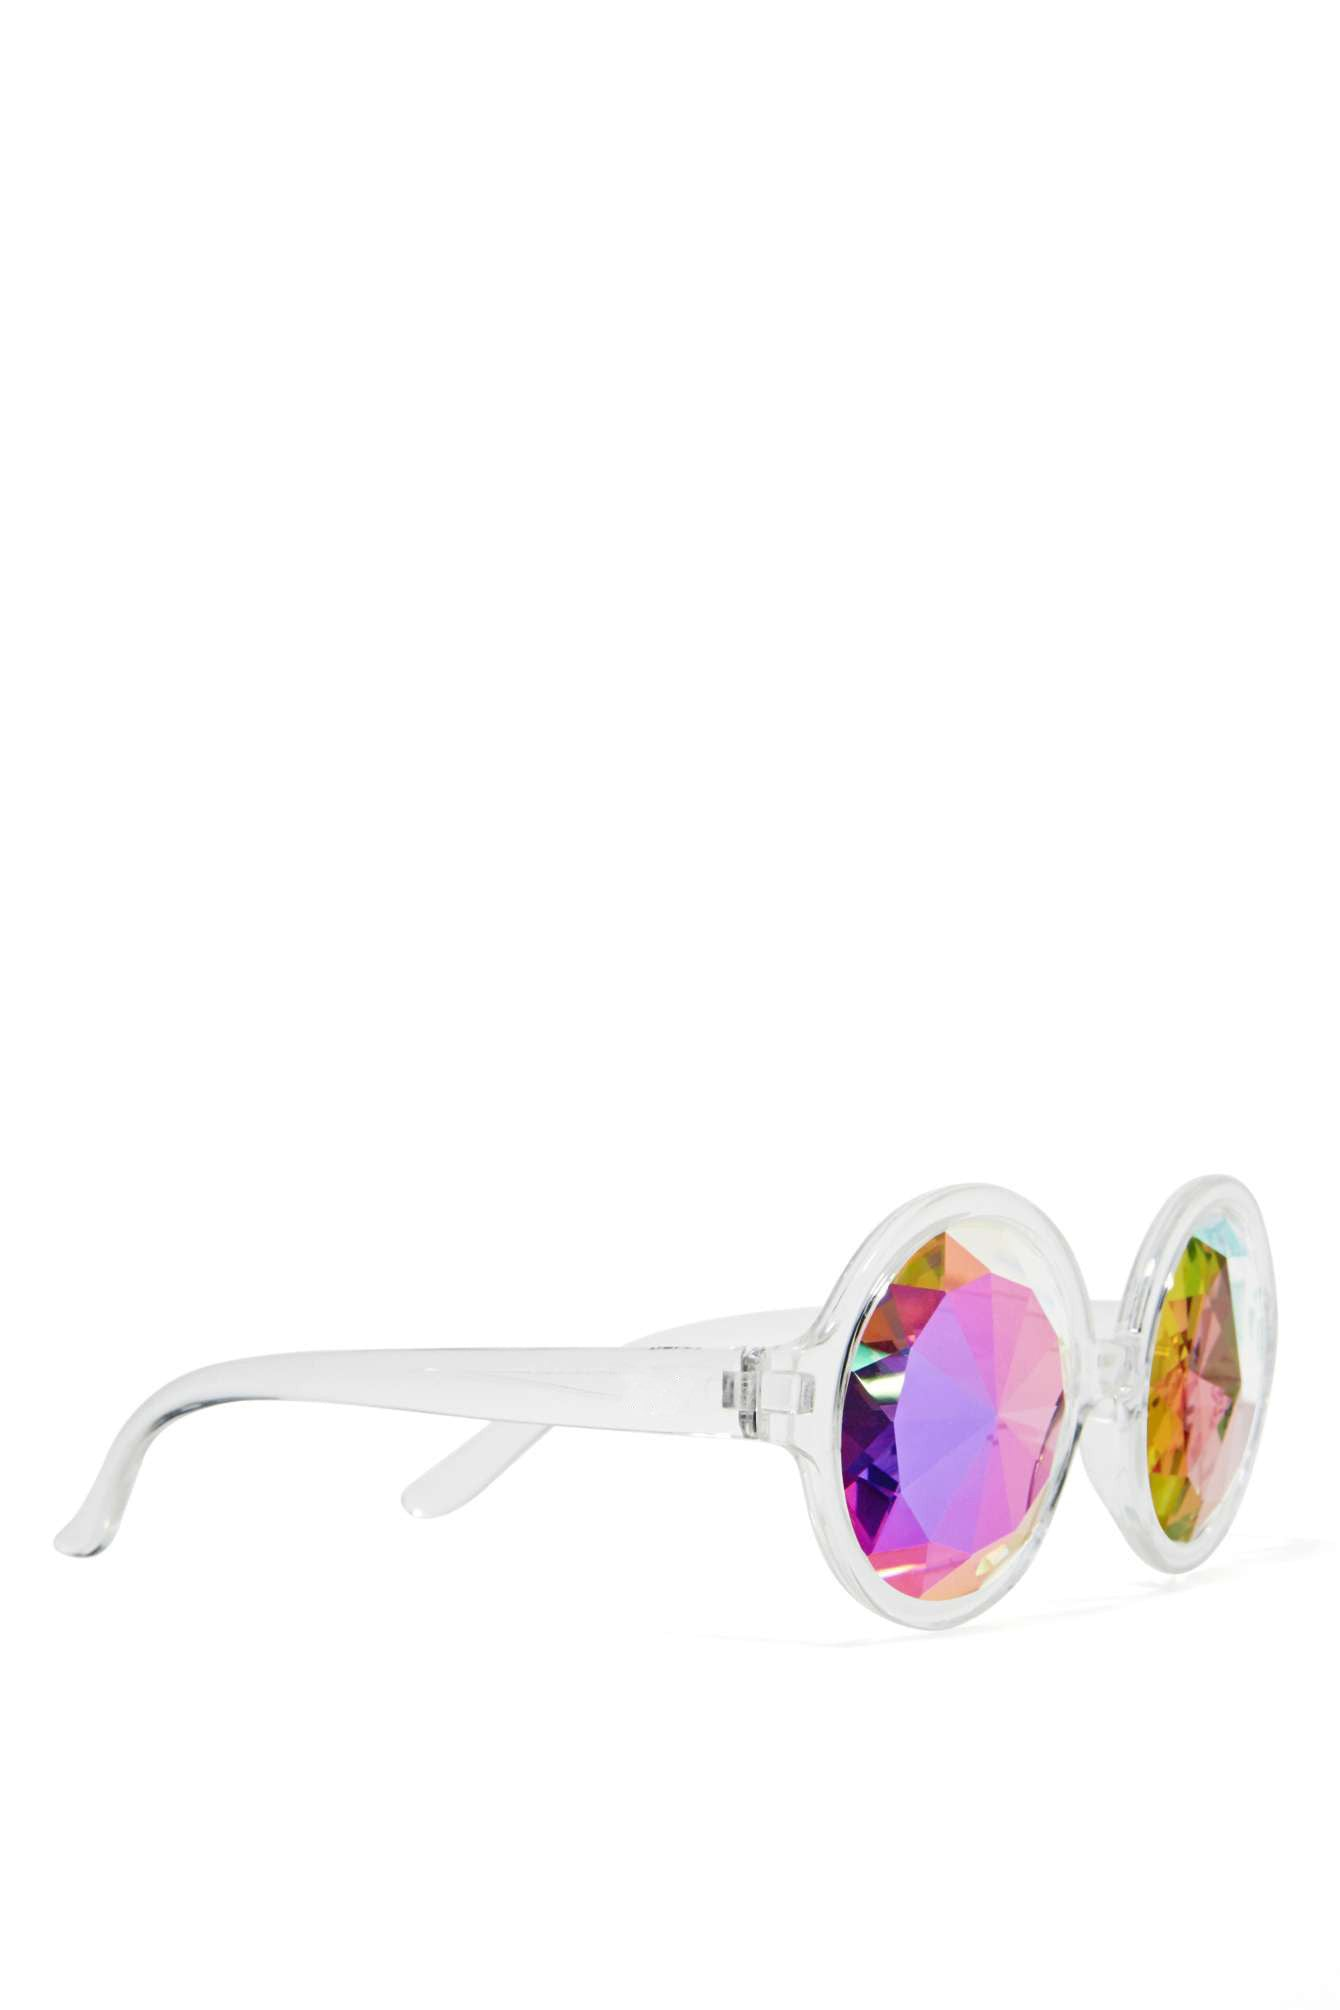 Clear kaleidoscope glasses